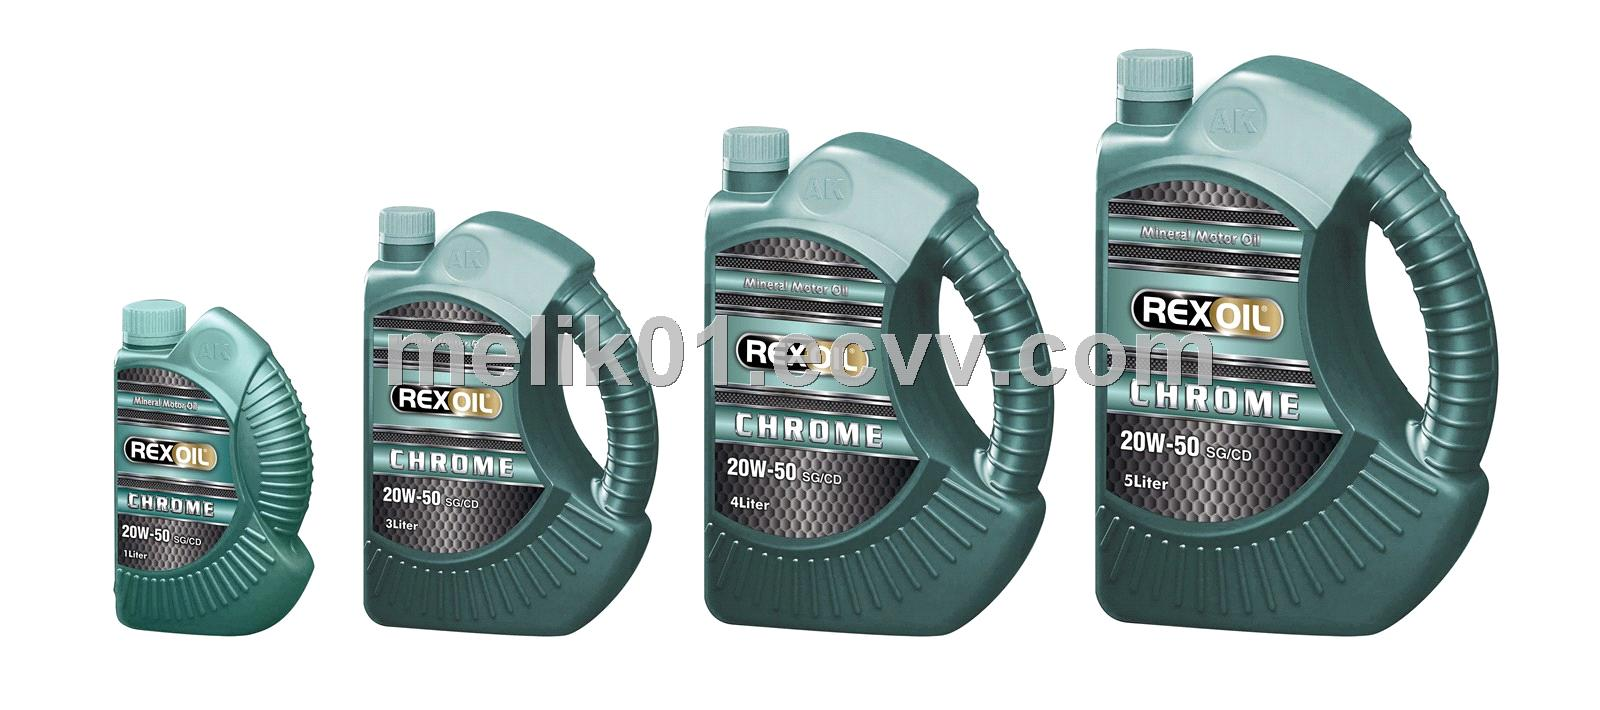 MOTOR OIL 20W50 from Turkey Manufacturer, Manufactory, Factory and